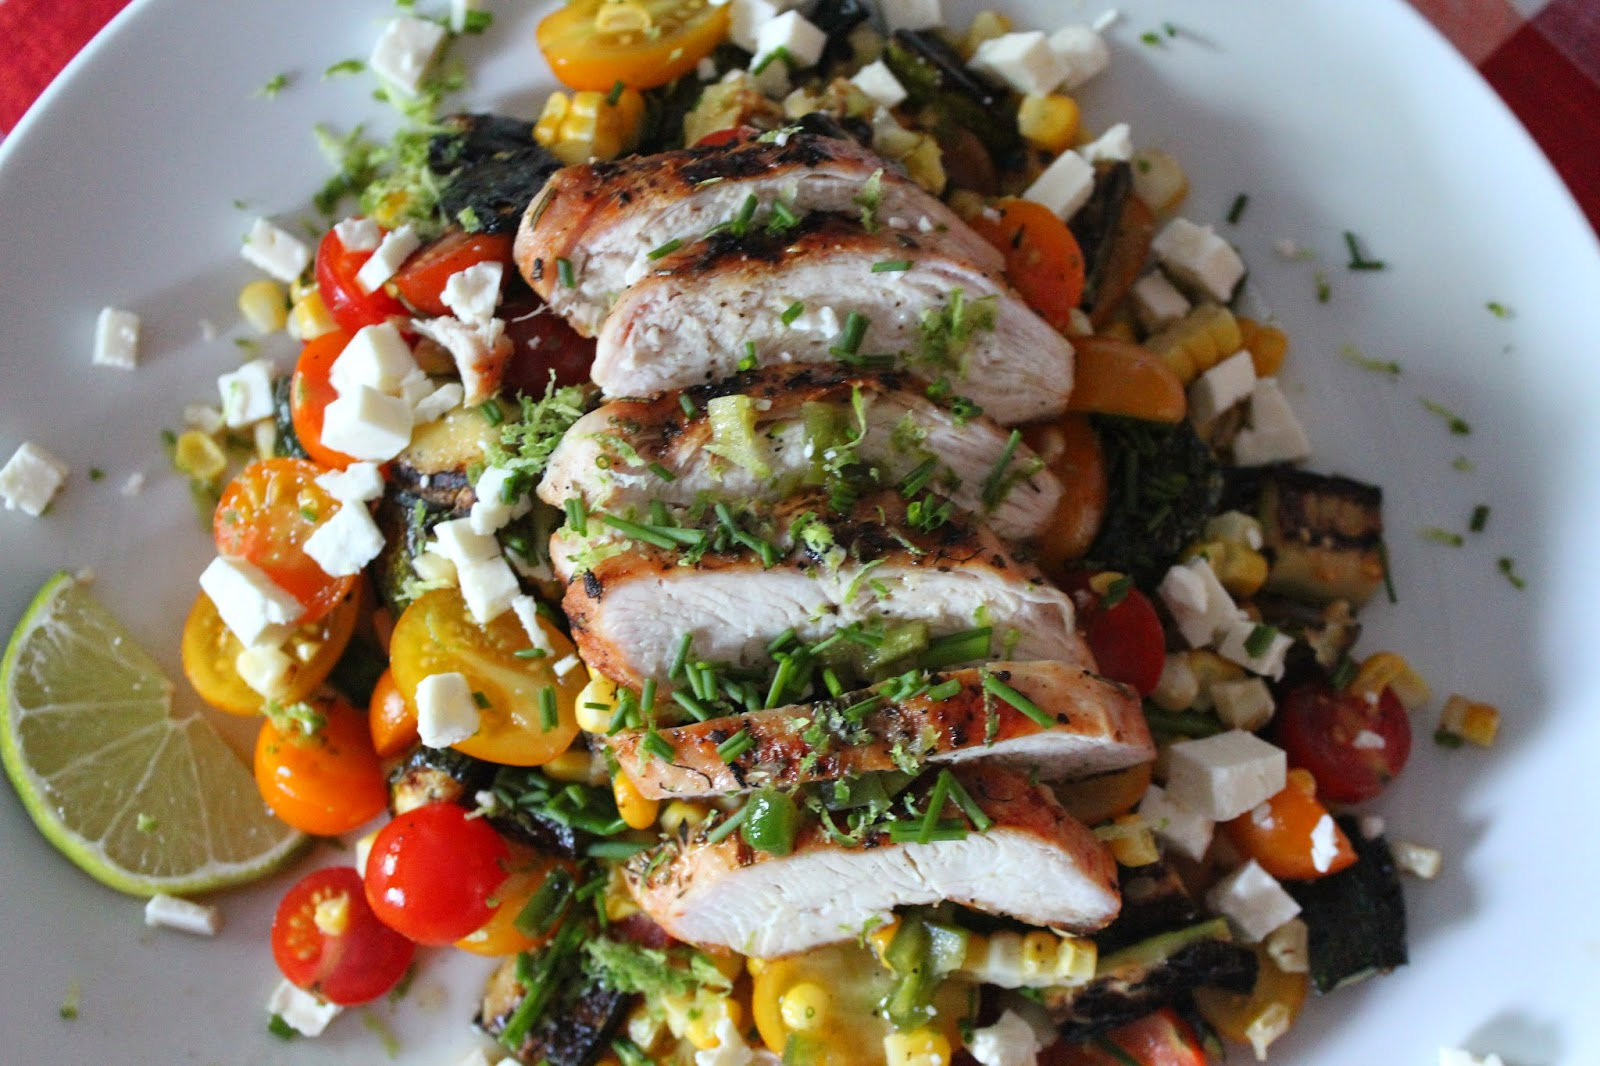 Grilled chicken and corn salad with feta and jalapeño-lime dressing